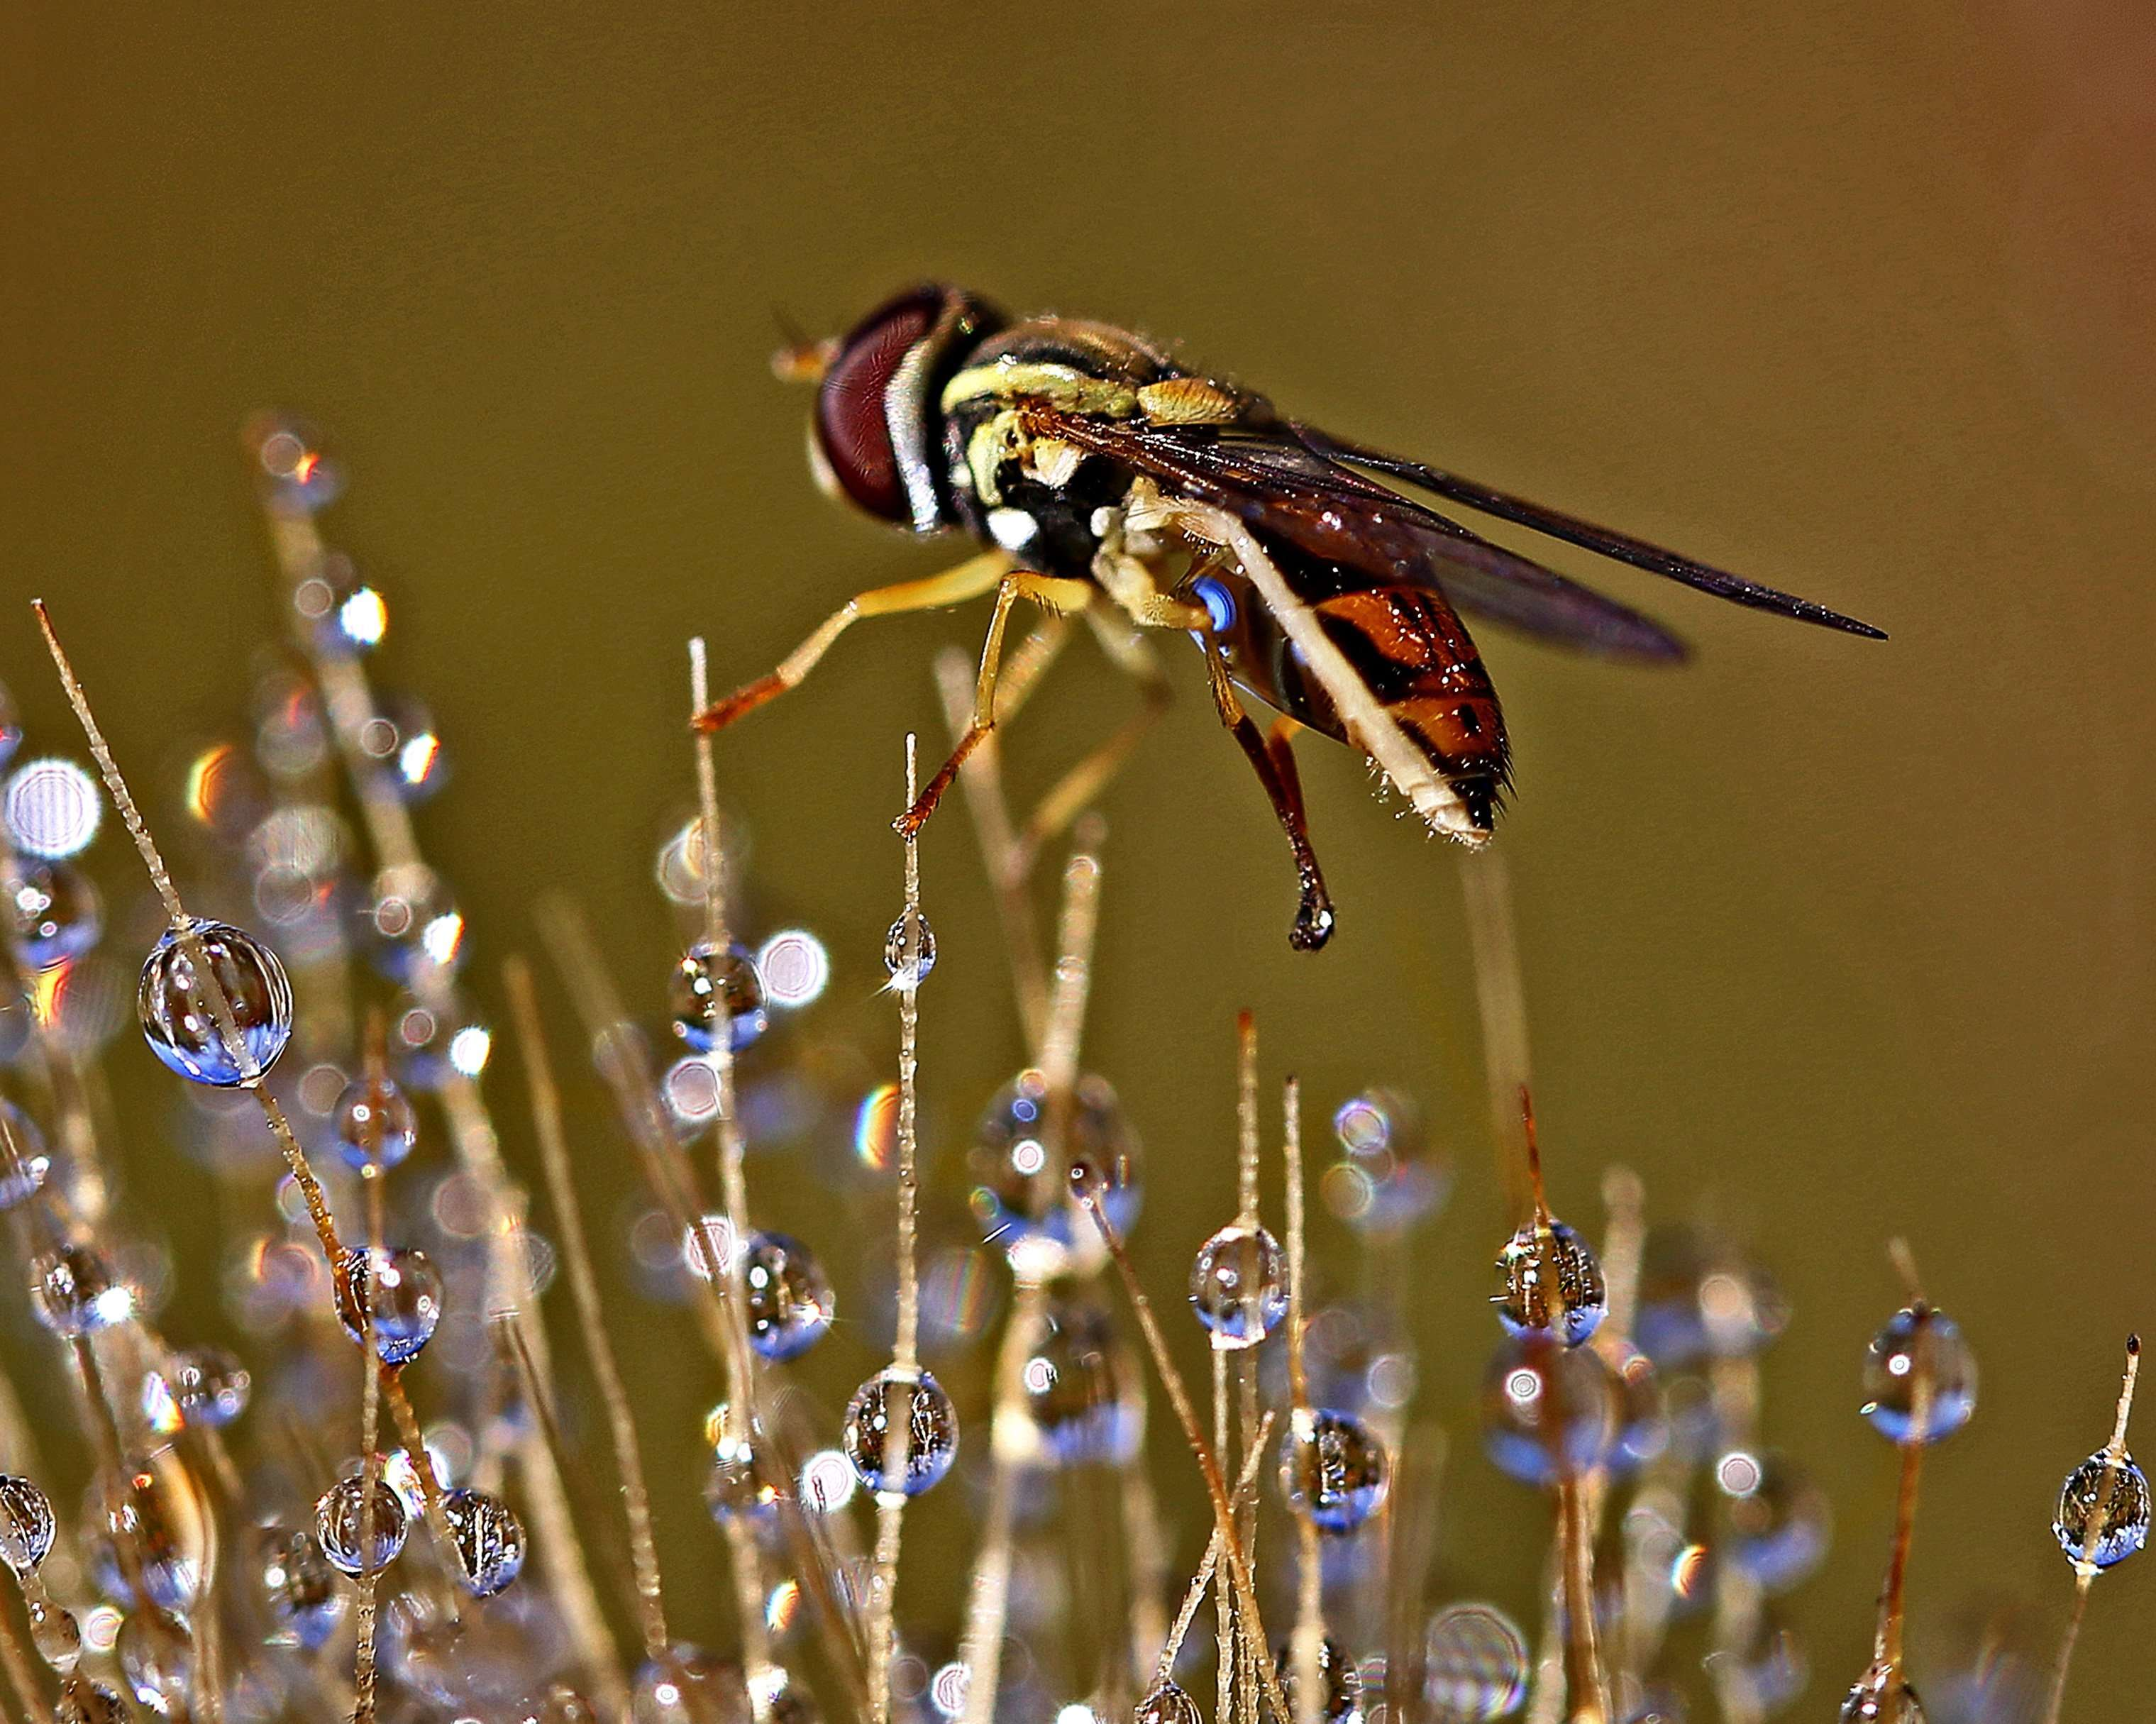 Syrphid Fly Bathing in Dewdrops